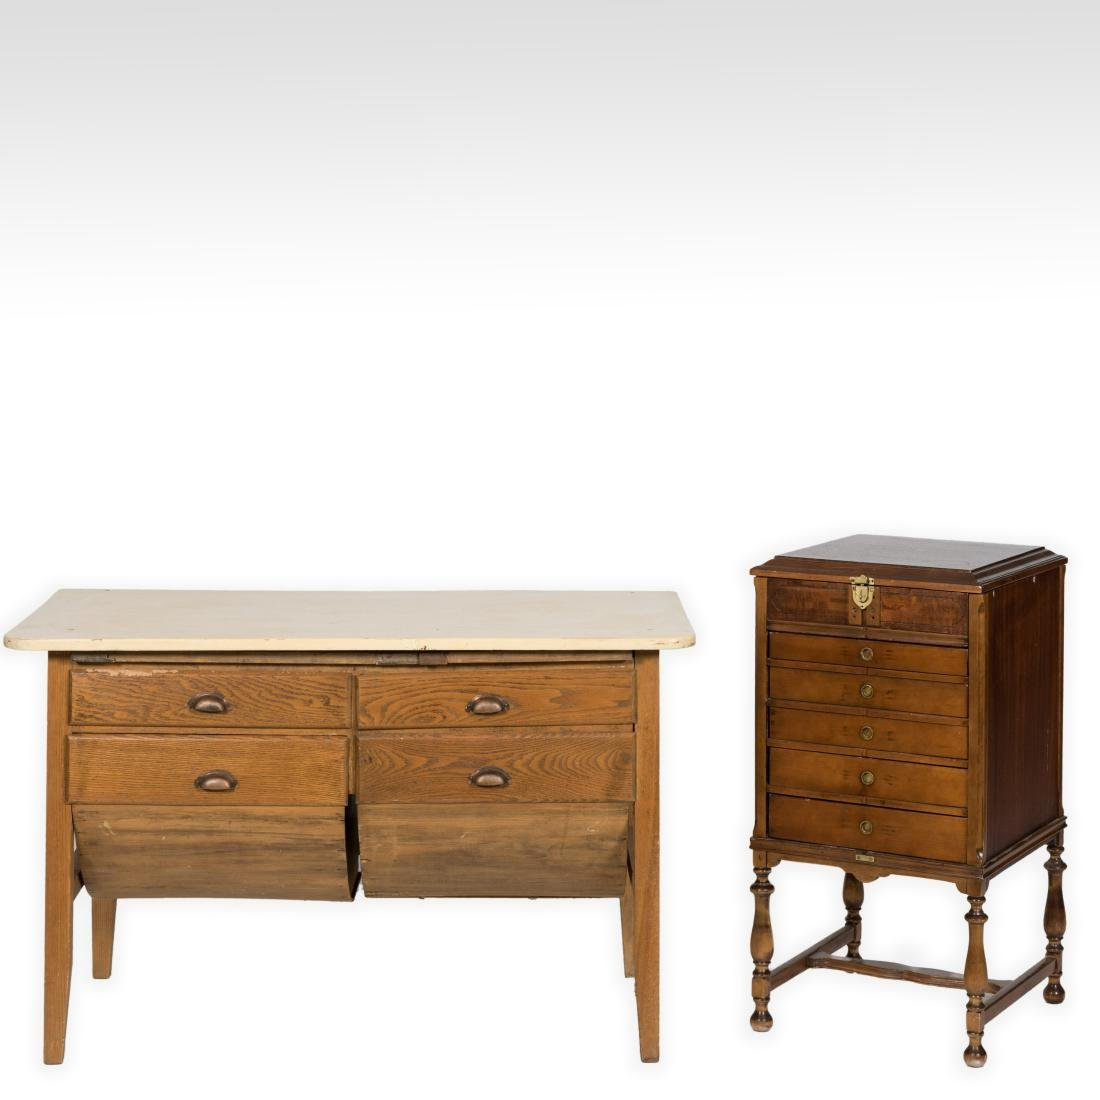 Hoosier Cabinet and Sewing Cabinet